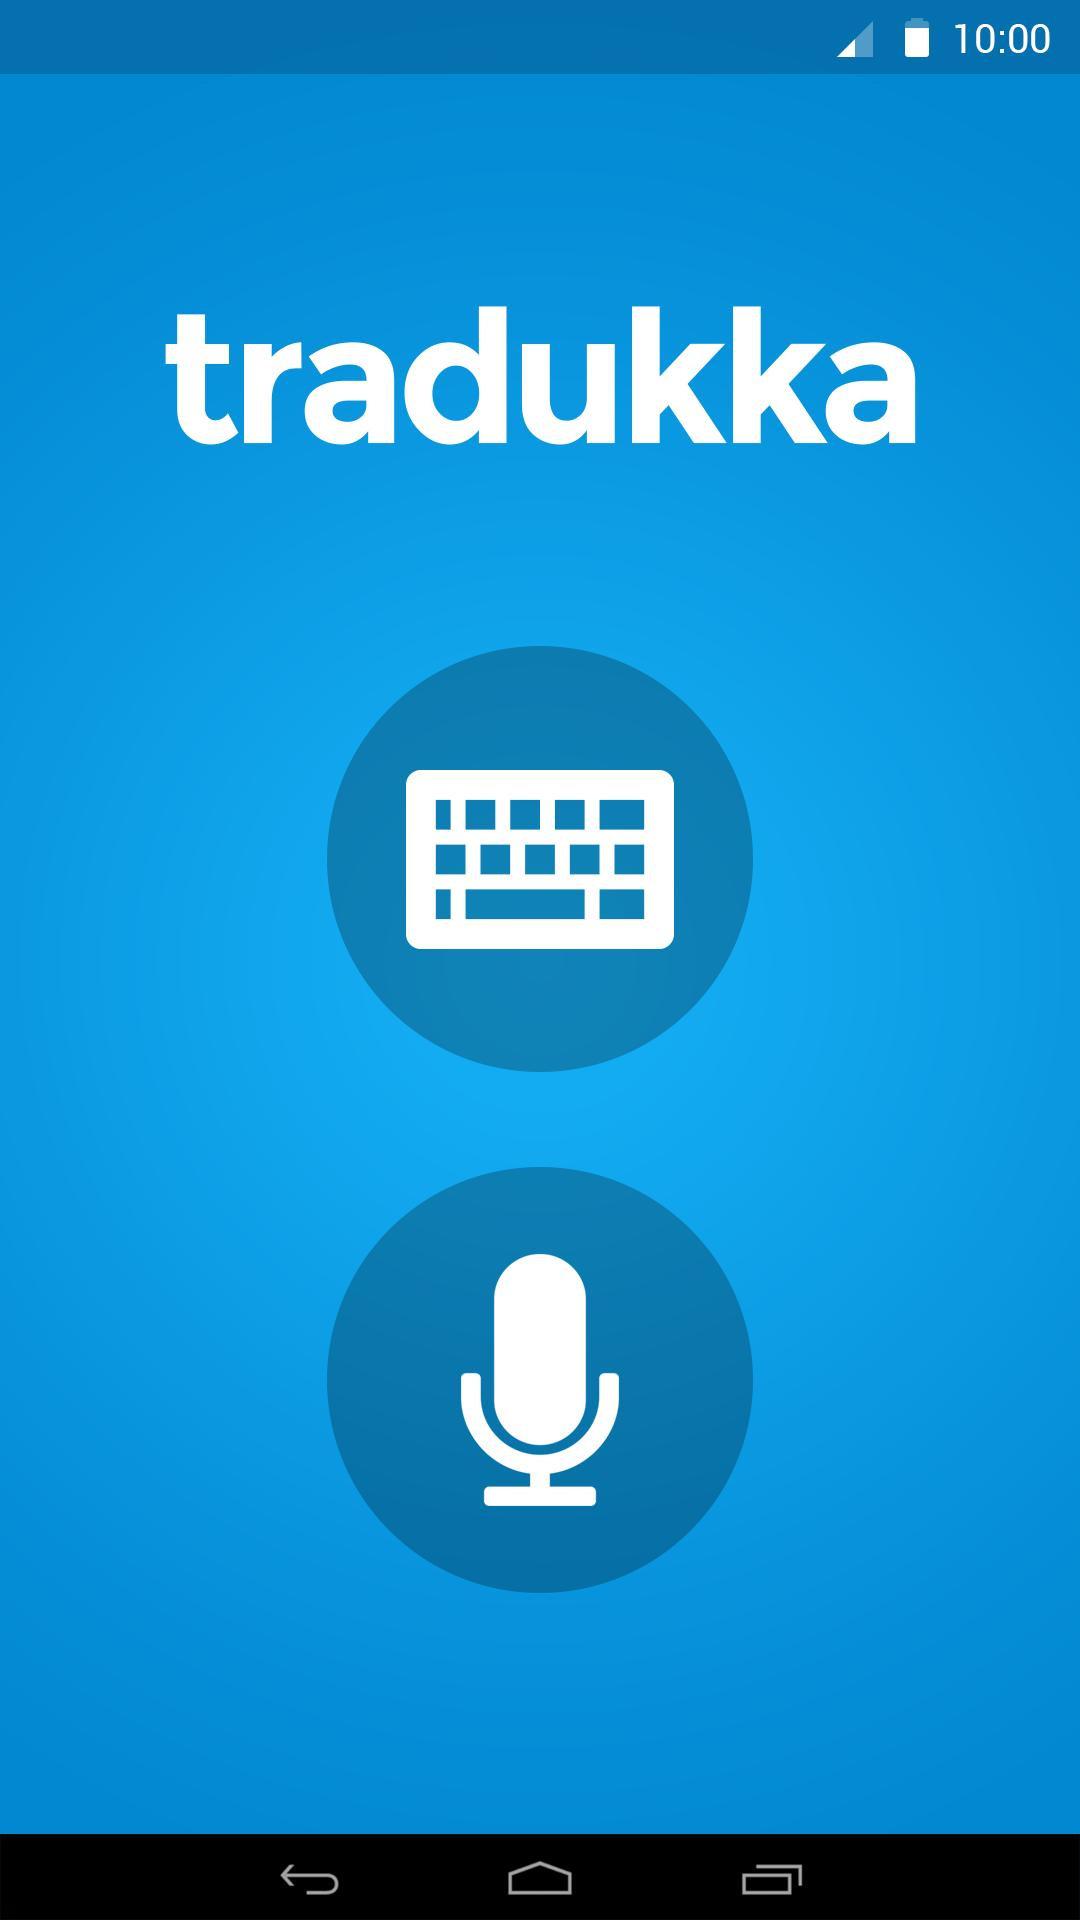 Tradukka For Android Apk Download The world's most popular spanish translation website. tradukka for android apk download